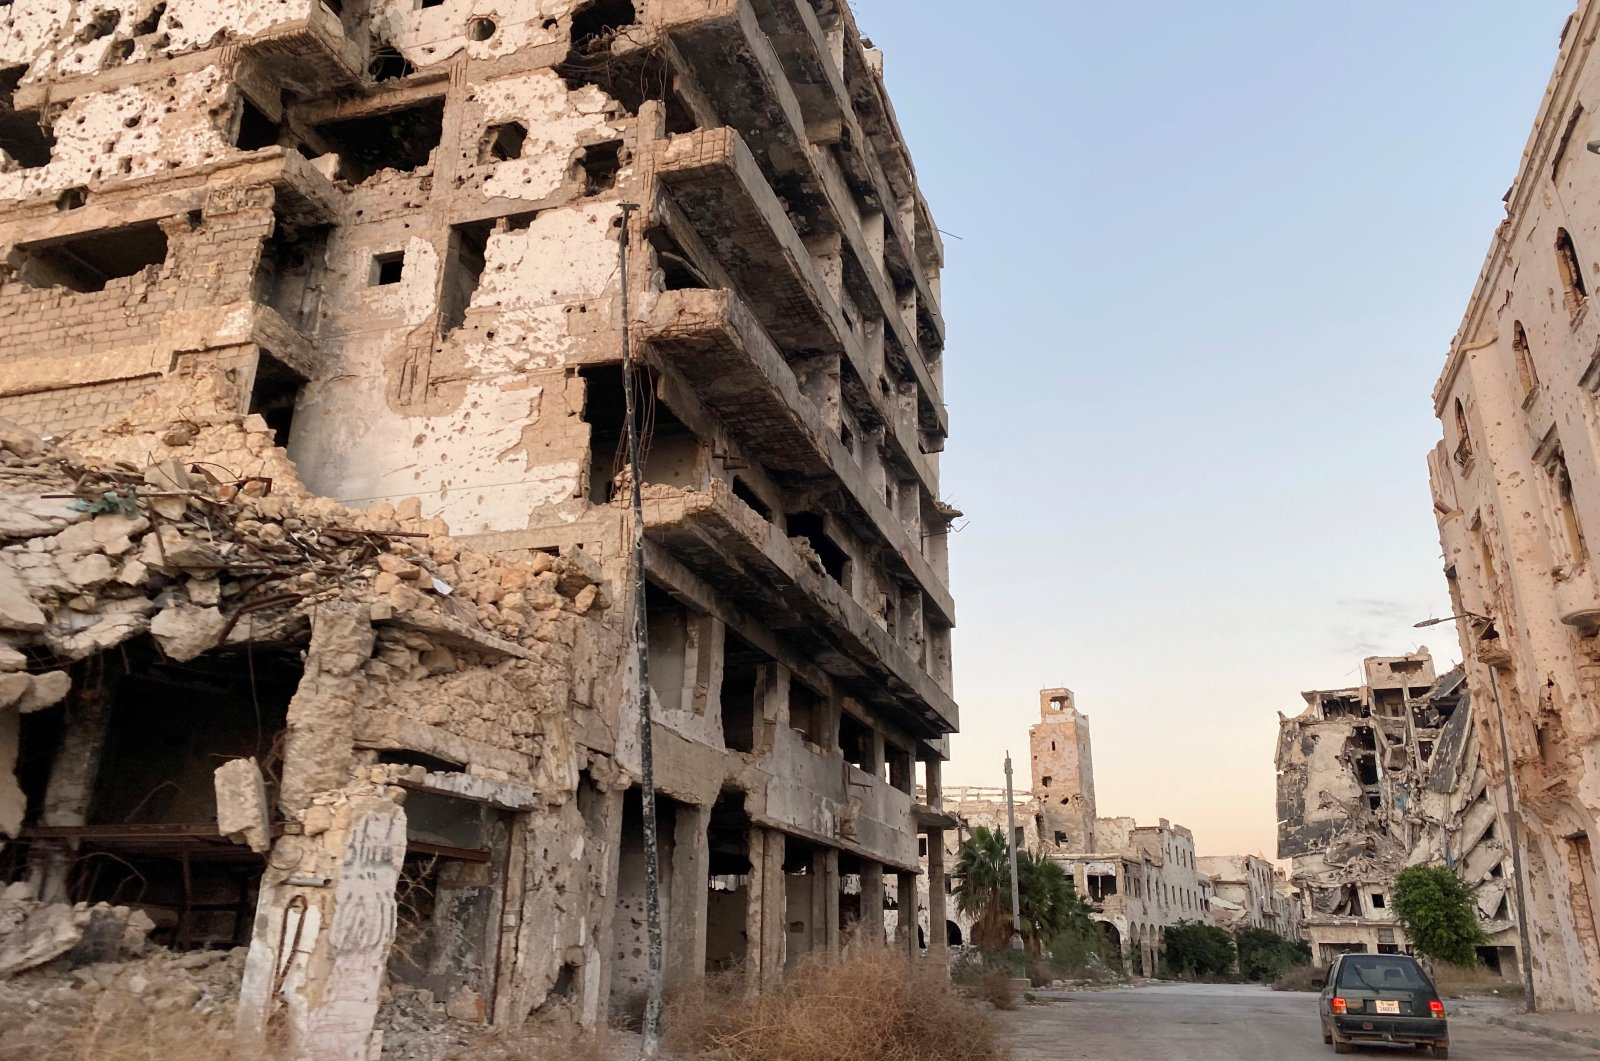 A car is parked between buildings destroyed during the nearly decadelong Libyan conflict in Benghazi, Libya, Nov. 23, 2020. (Reuters Photo)